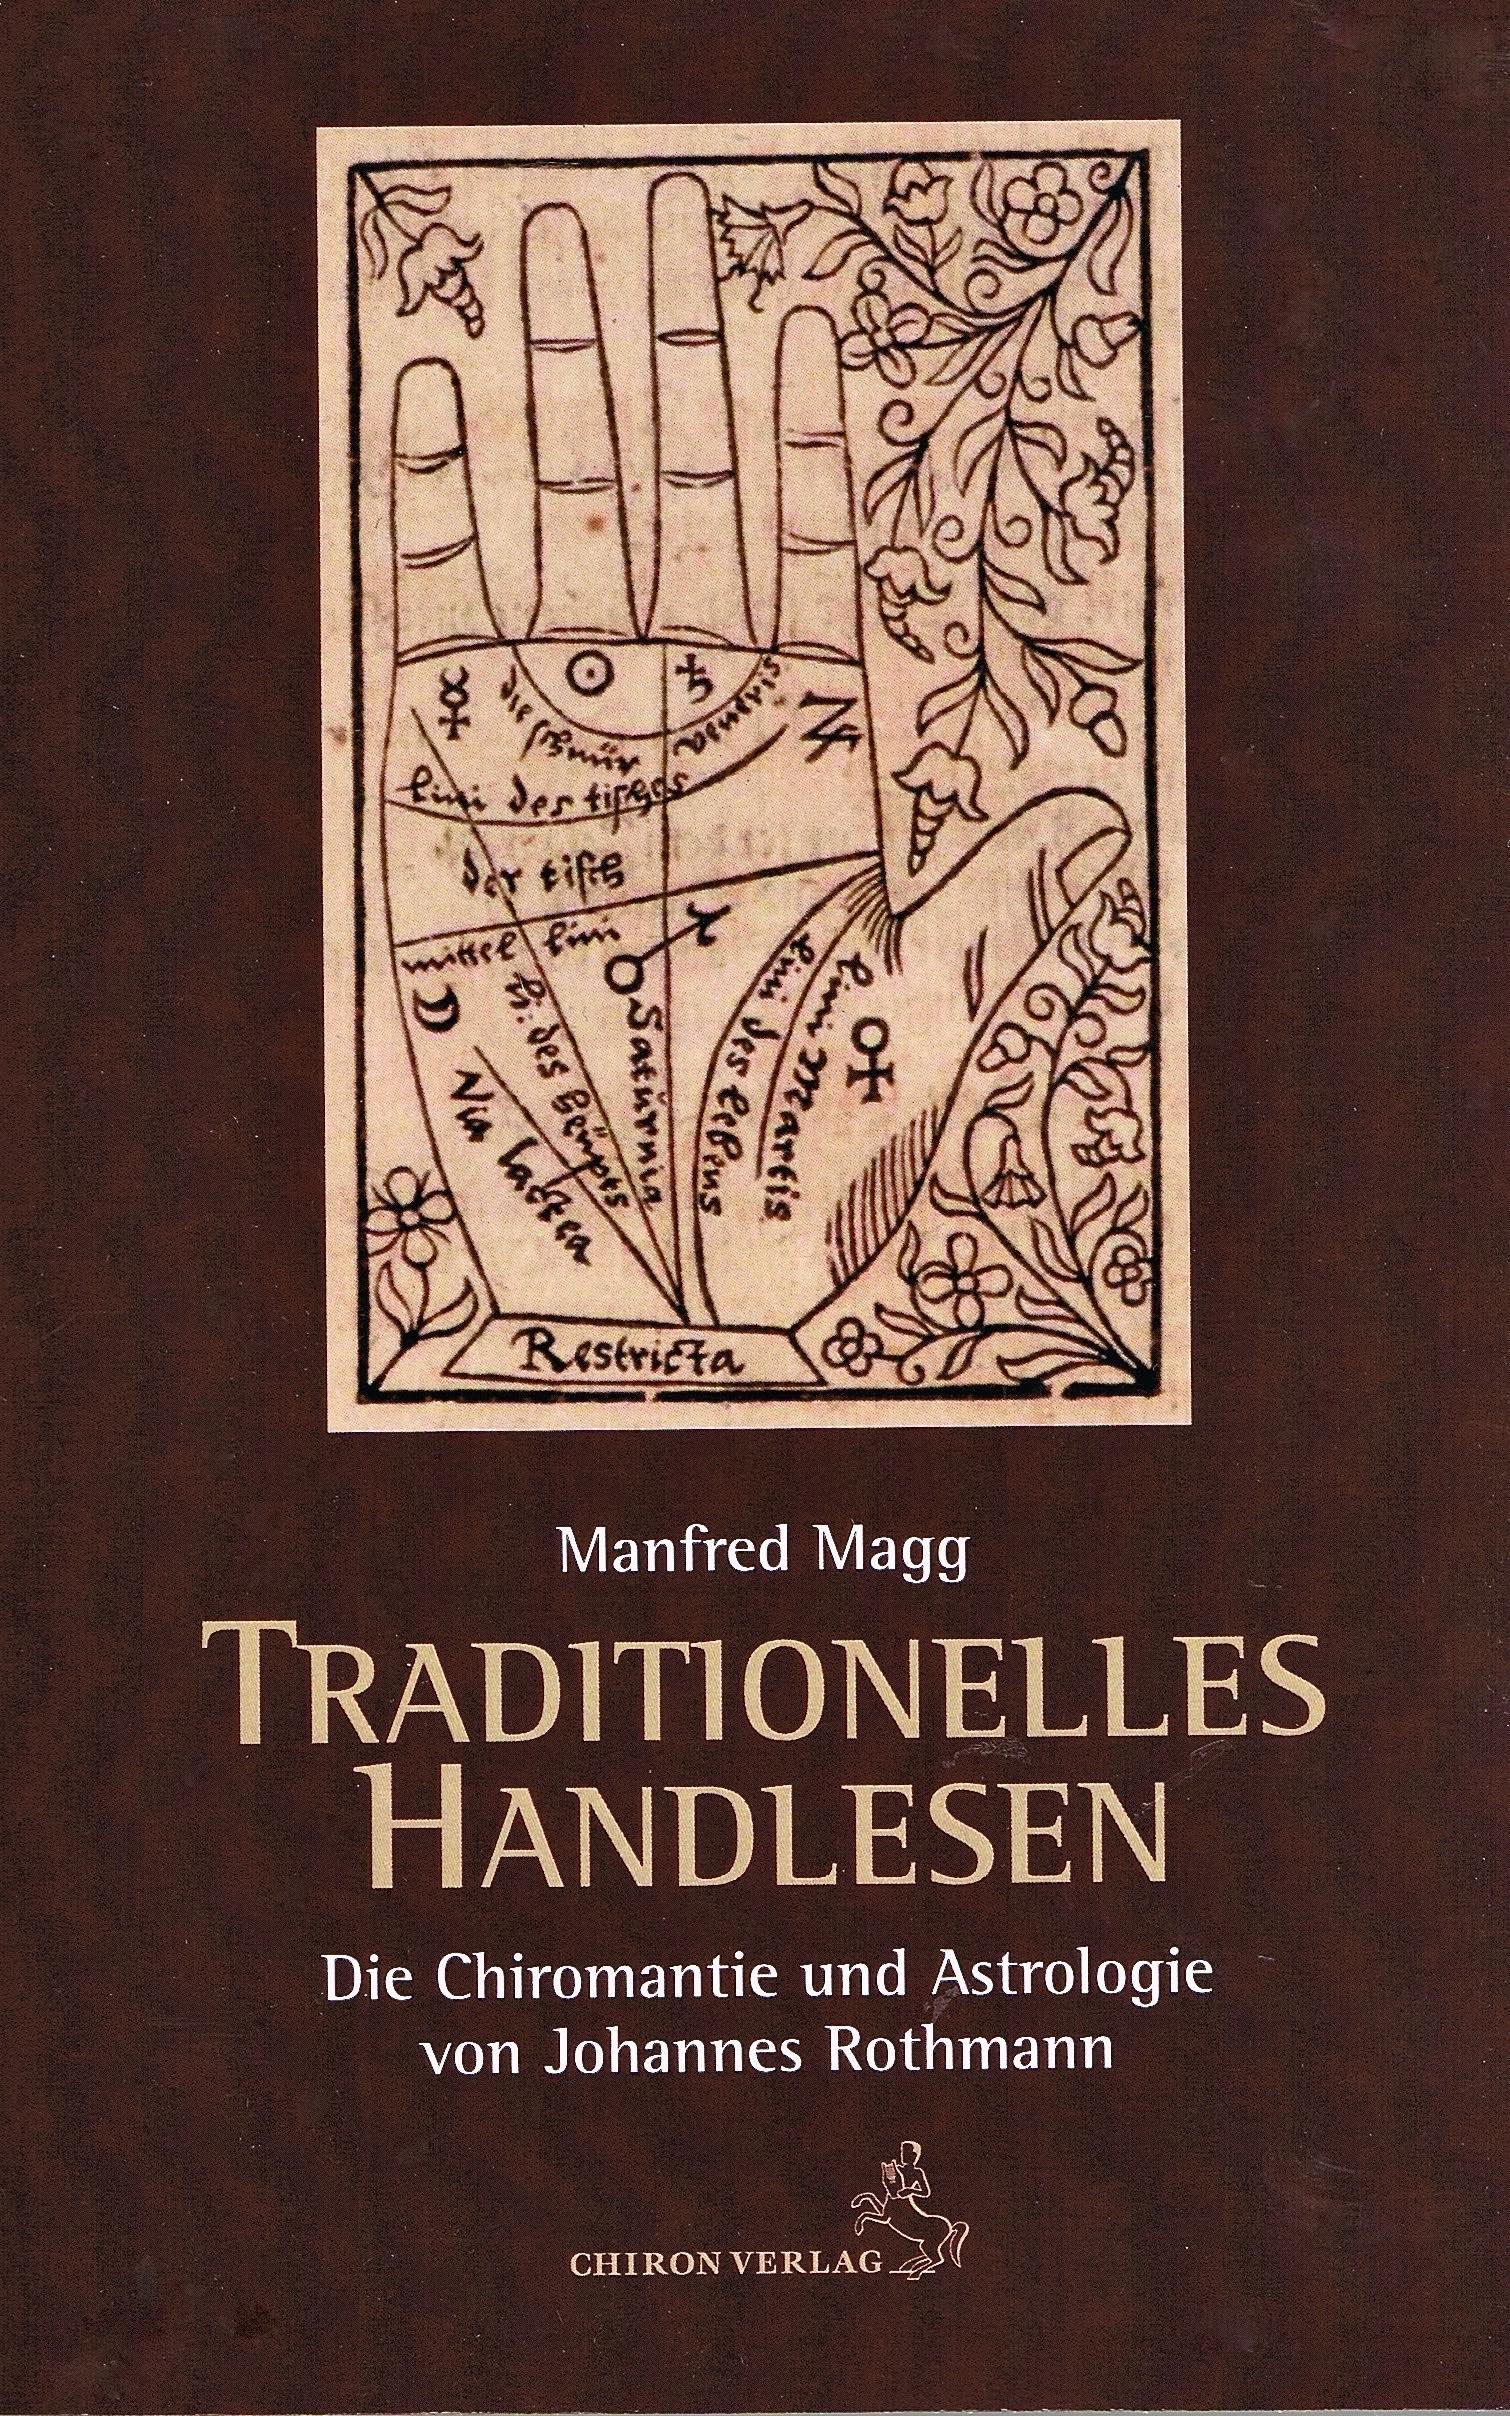 Buch Traditionelles Handlesen